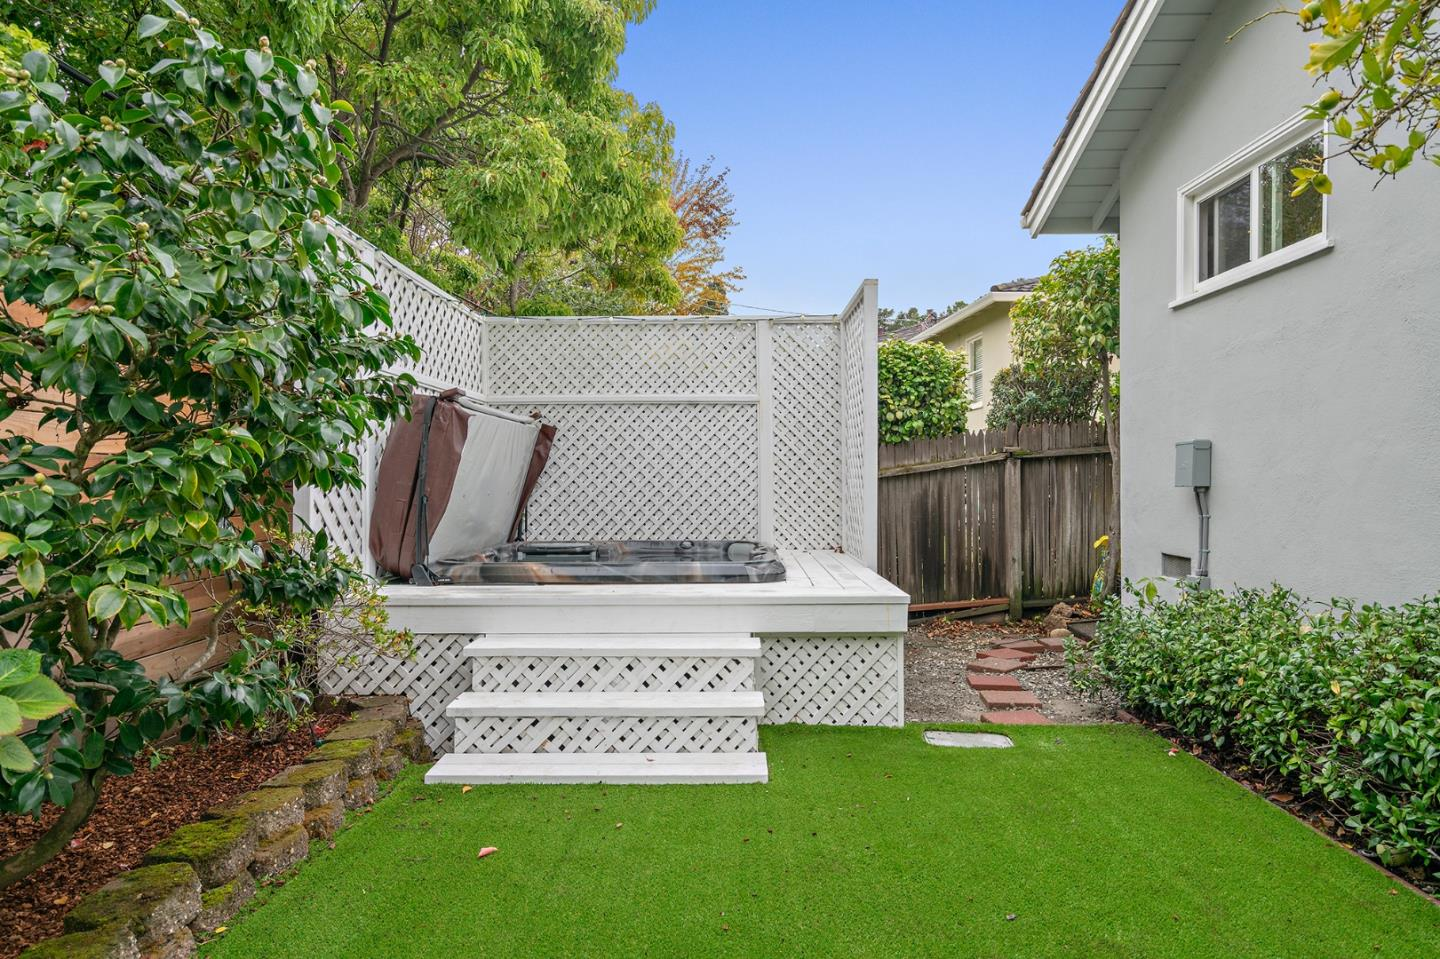 1304 Vernon Terrace San Mateo, CA 94402 - MLS #: ML81732372